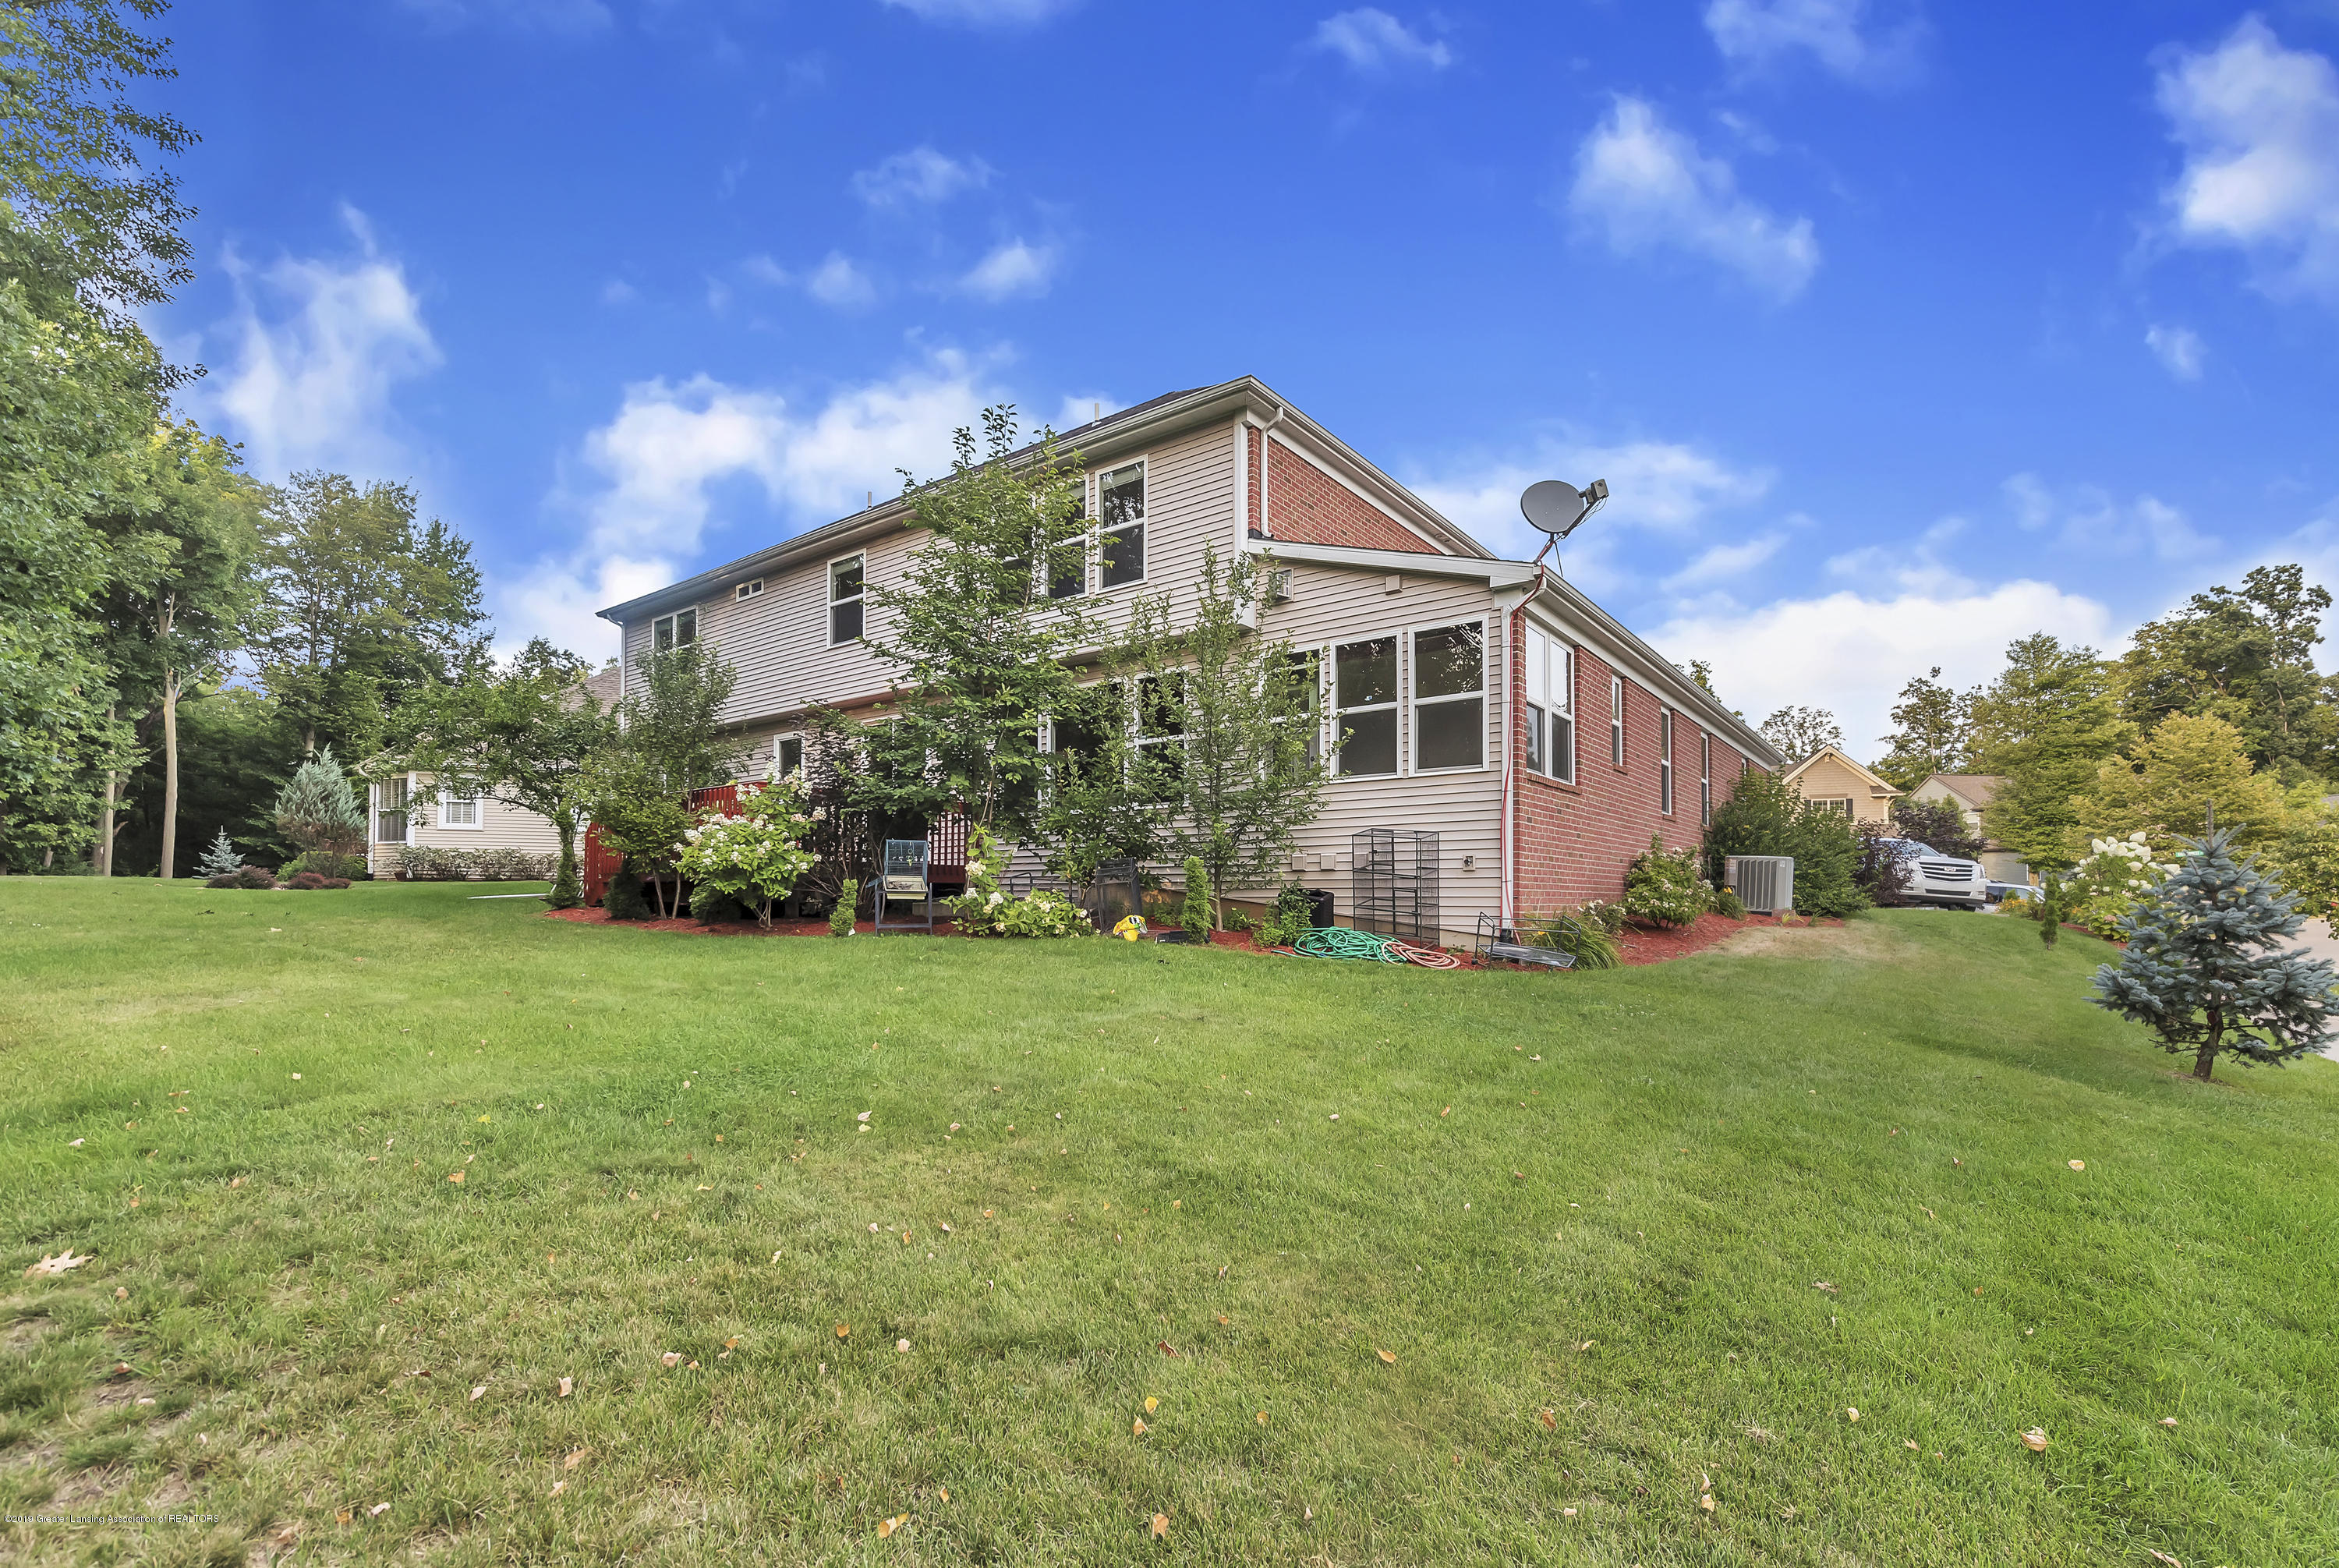 4229 Rain Forest Cir - 4229-Rainforest-Circle-Okemos-MI-windows - 48